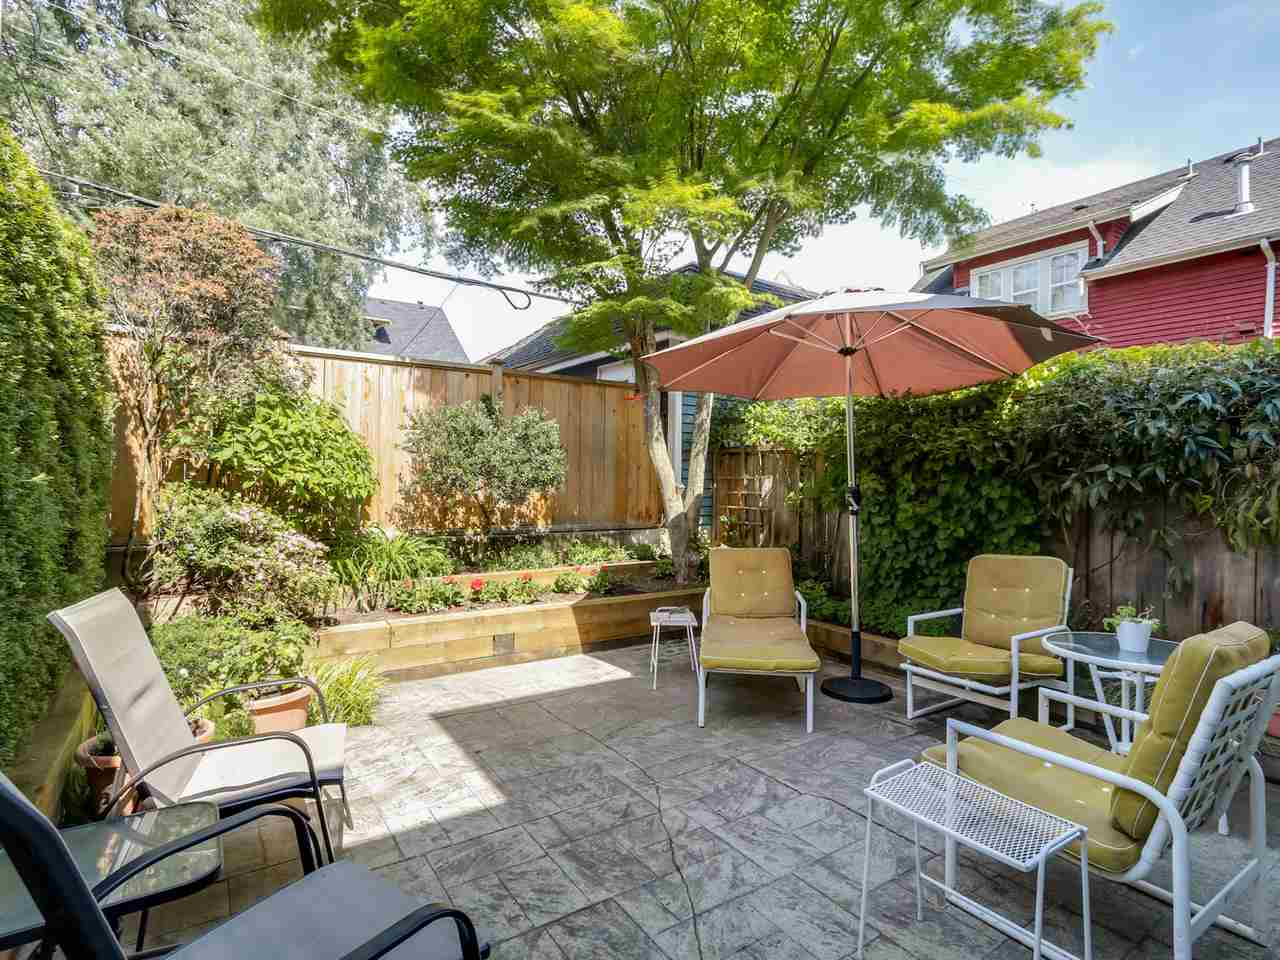 Photo 18: 1825 W 11TH Avenue in Vancouver: Kitsilano Townhouse for sale (Vancouver West)  : MLS® # R2061107